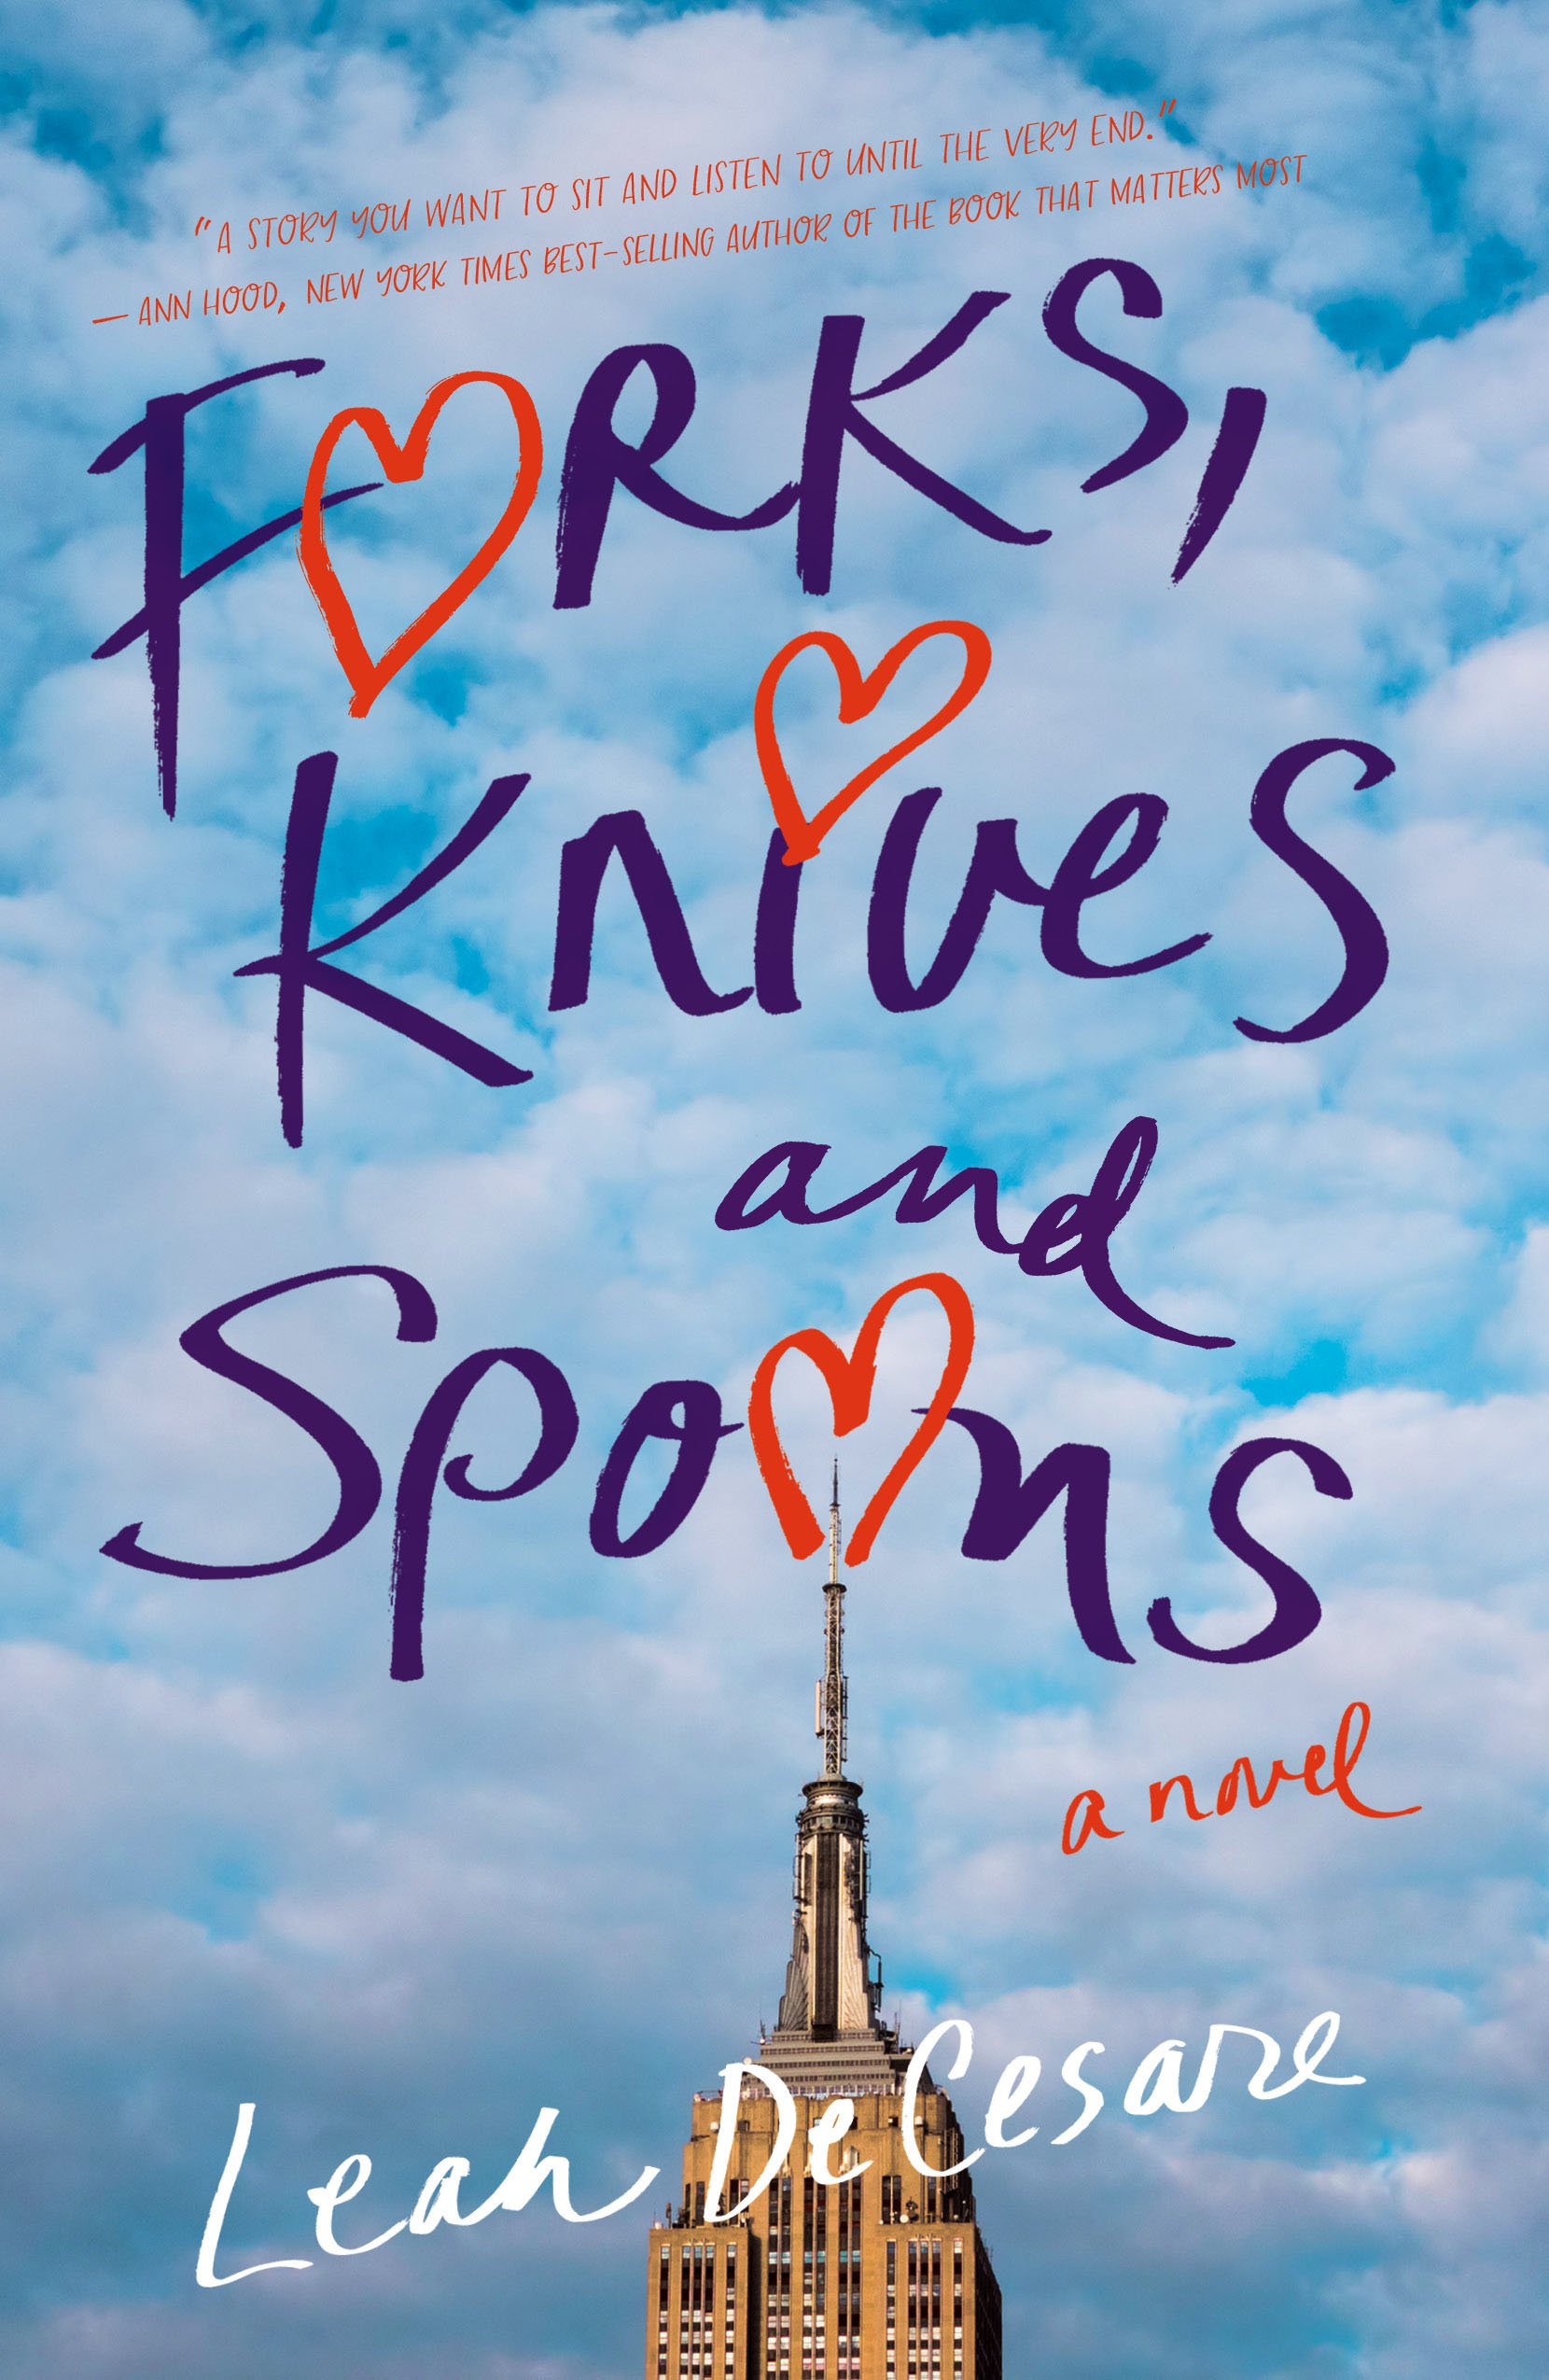 Forks, Knives, And Spoons: A Novel: Leah Decesare: 9781943006106:  Amazon: Books